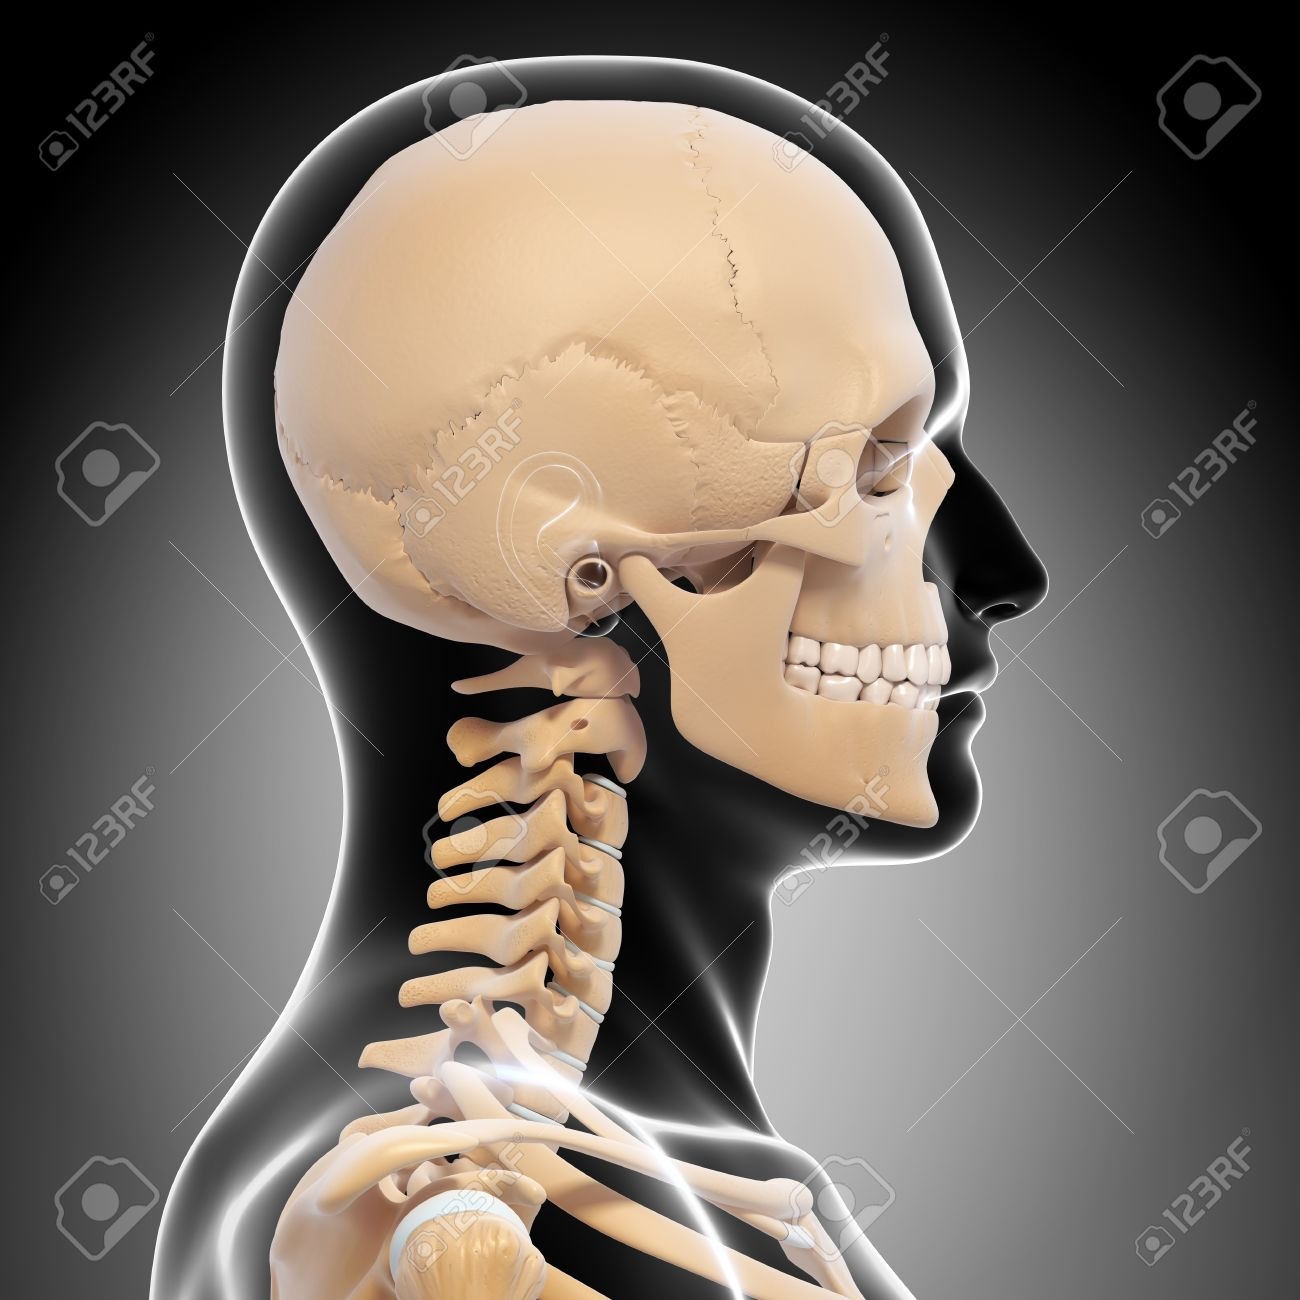 Human Skeleton Side View Of Head Isolated In Gray Stock Photo